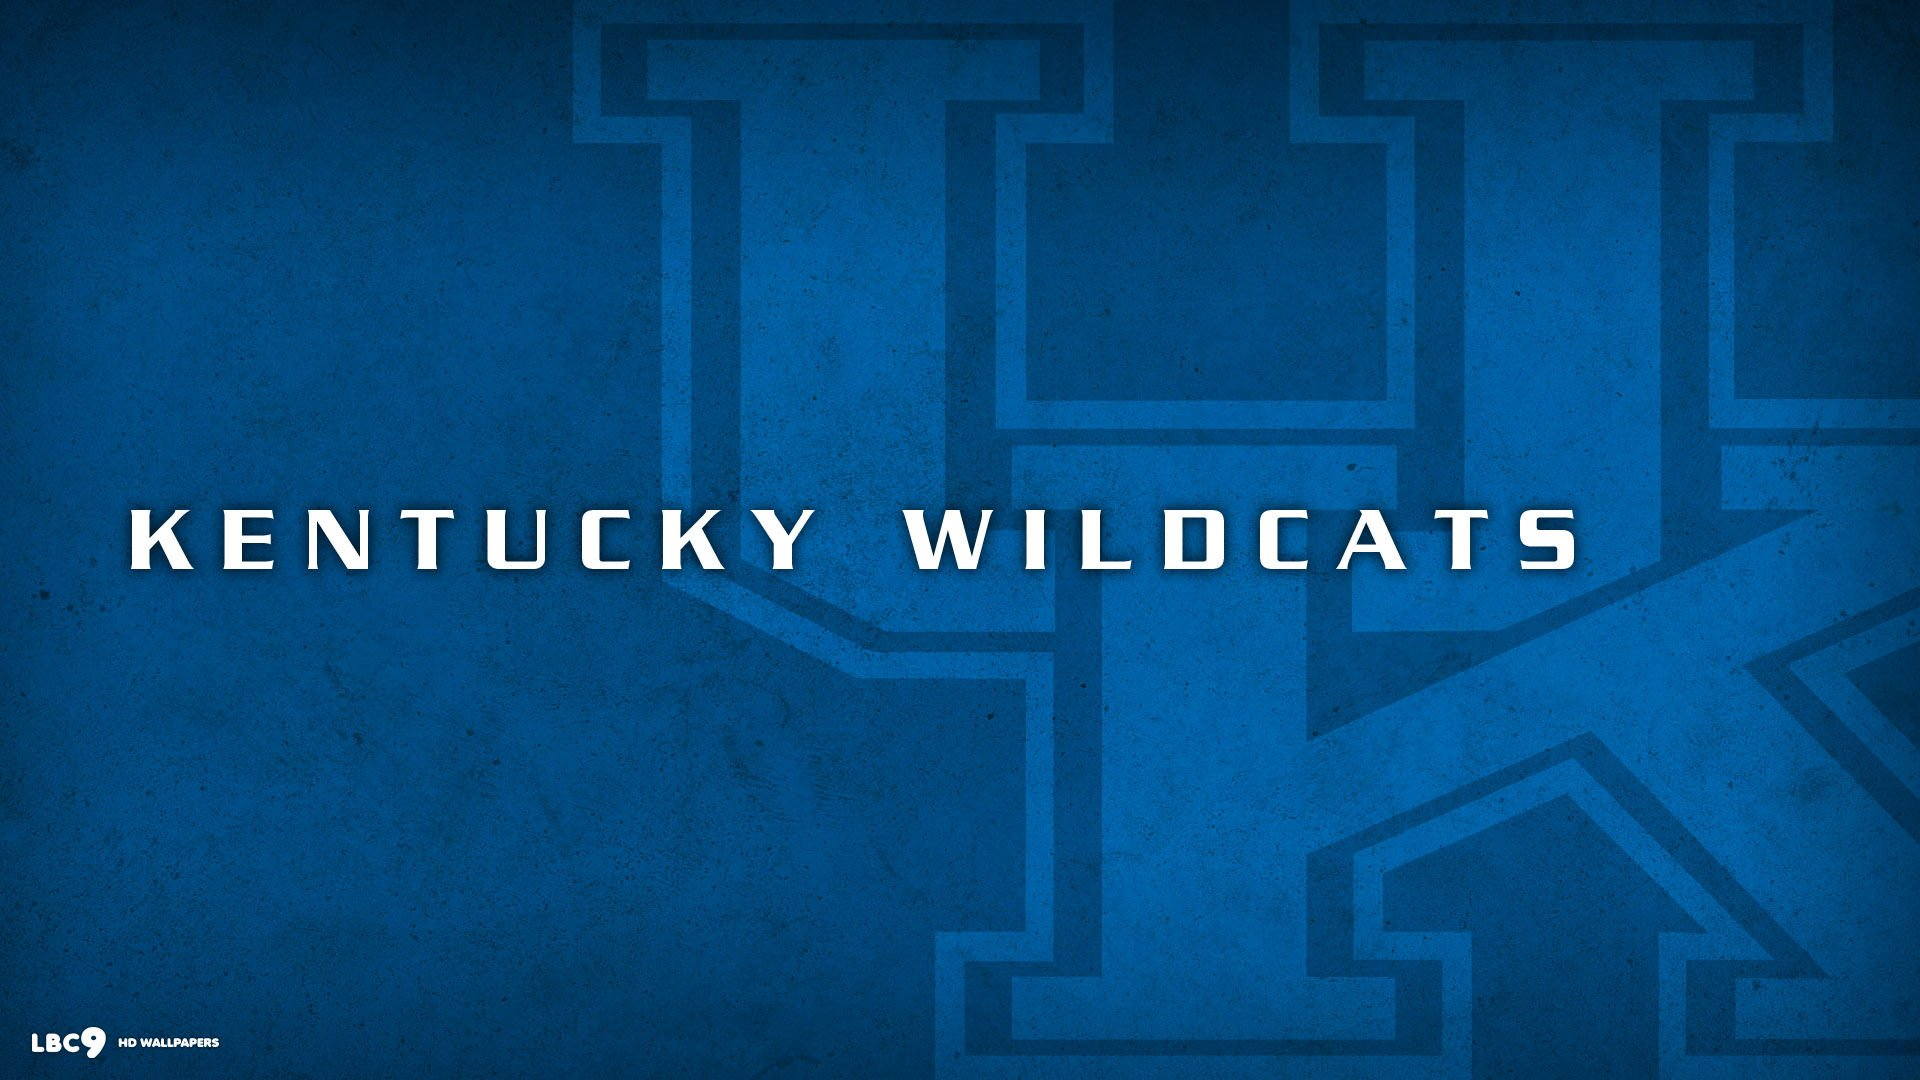 Kentucky Wildcats Wallpaper 1920x1080